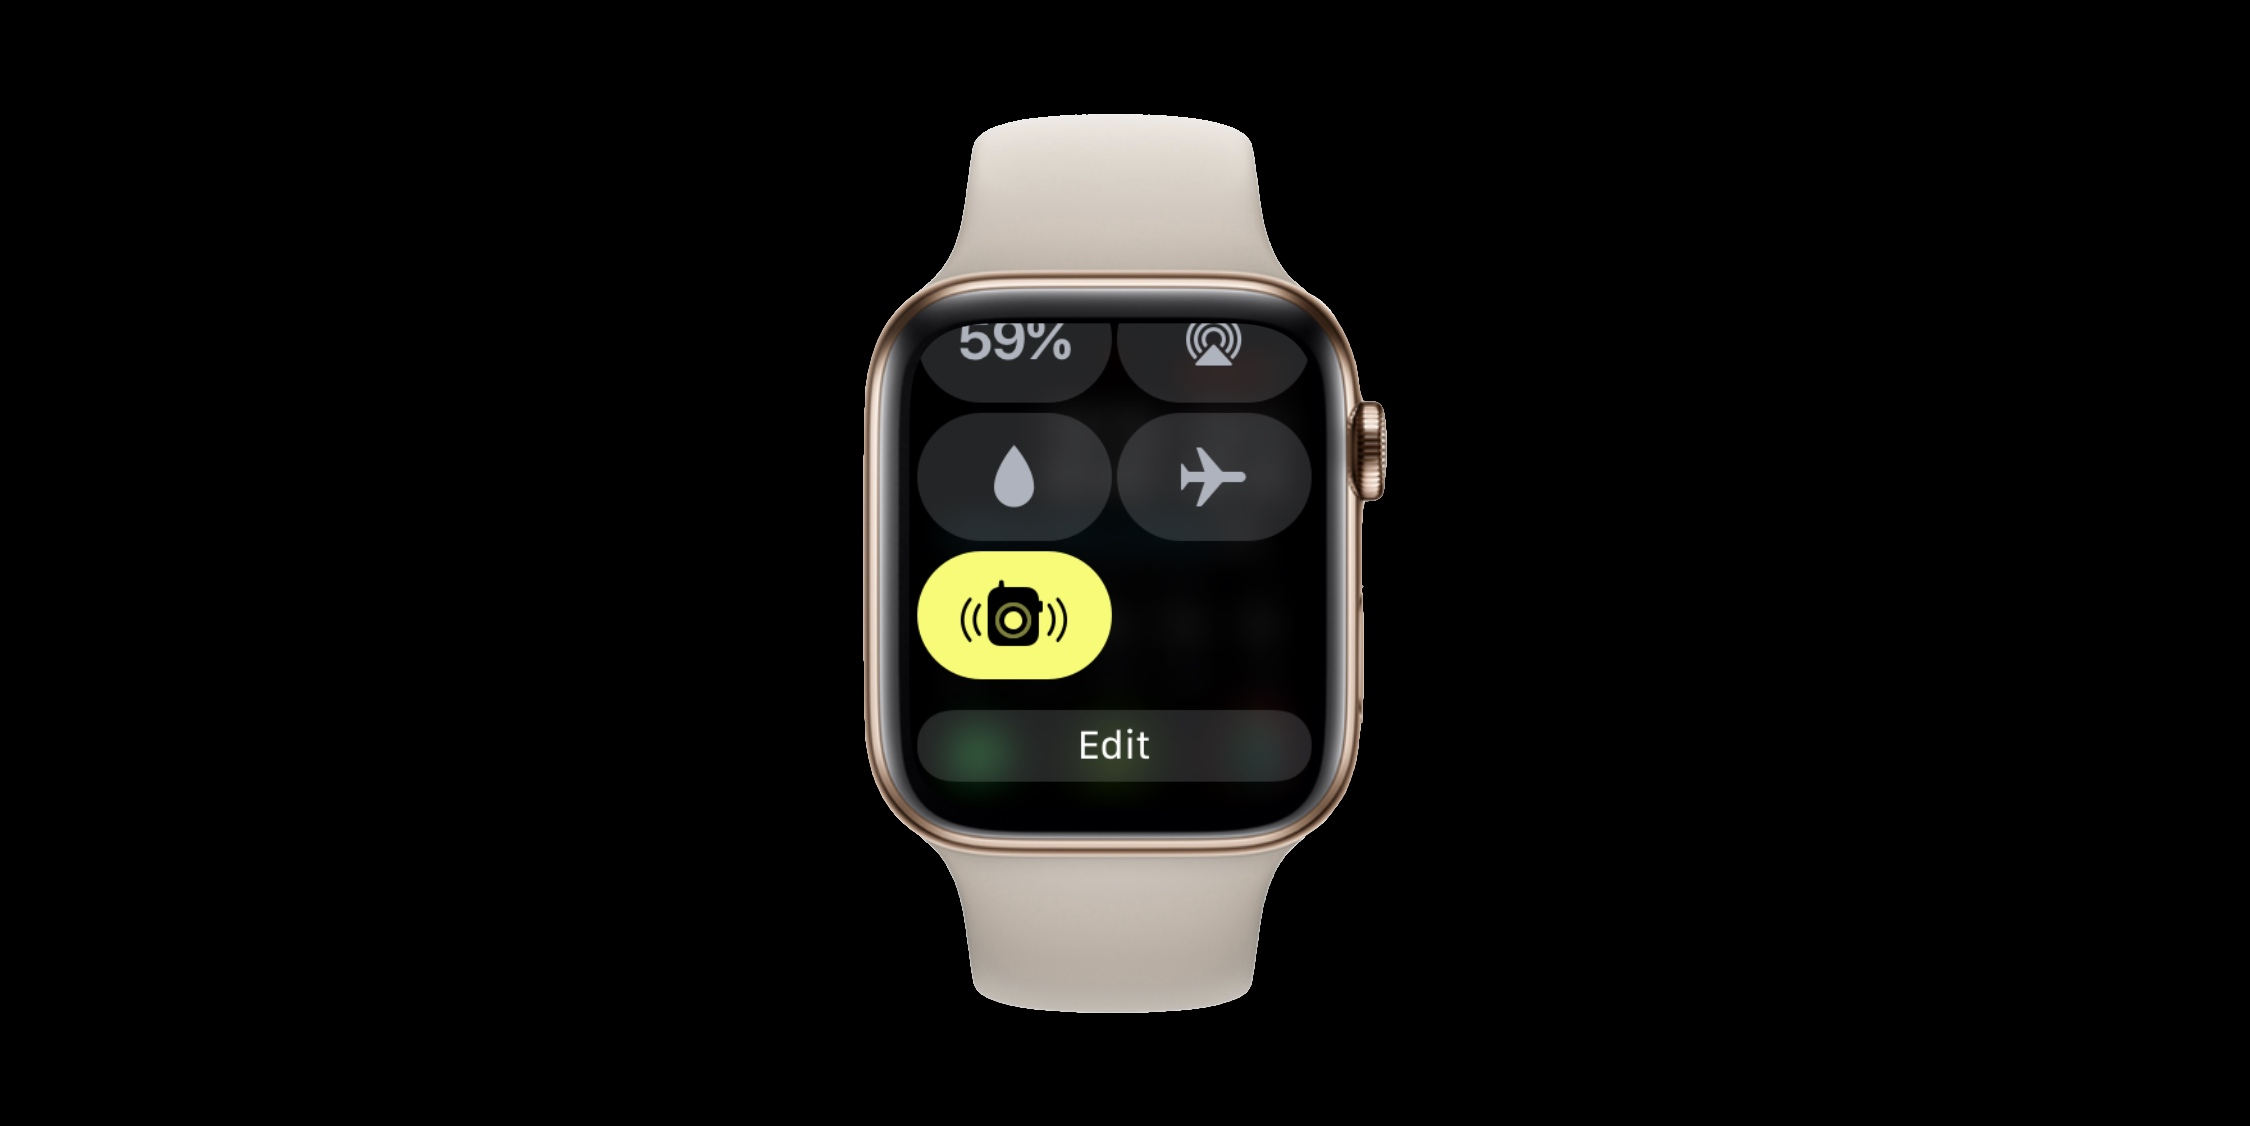 watchOS 5.1.2 adds Control Center toggle for Walkie-Talkie availability